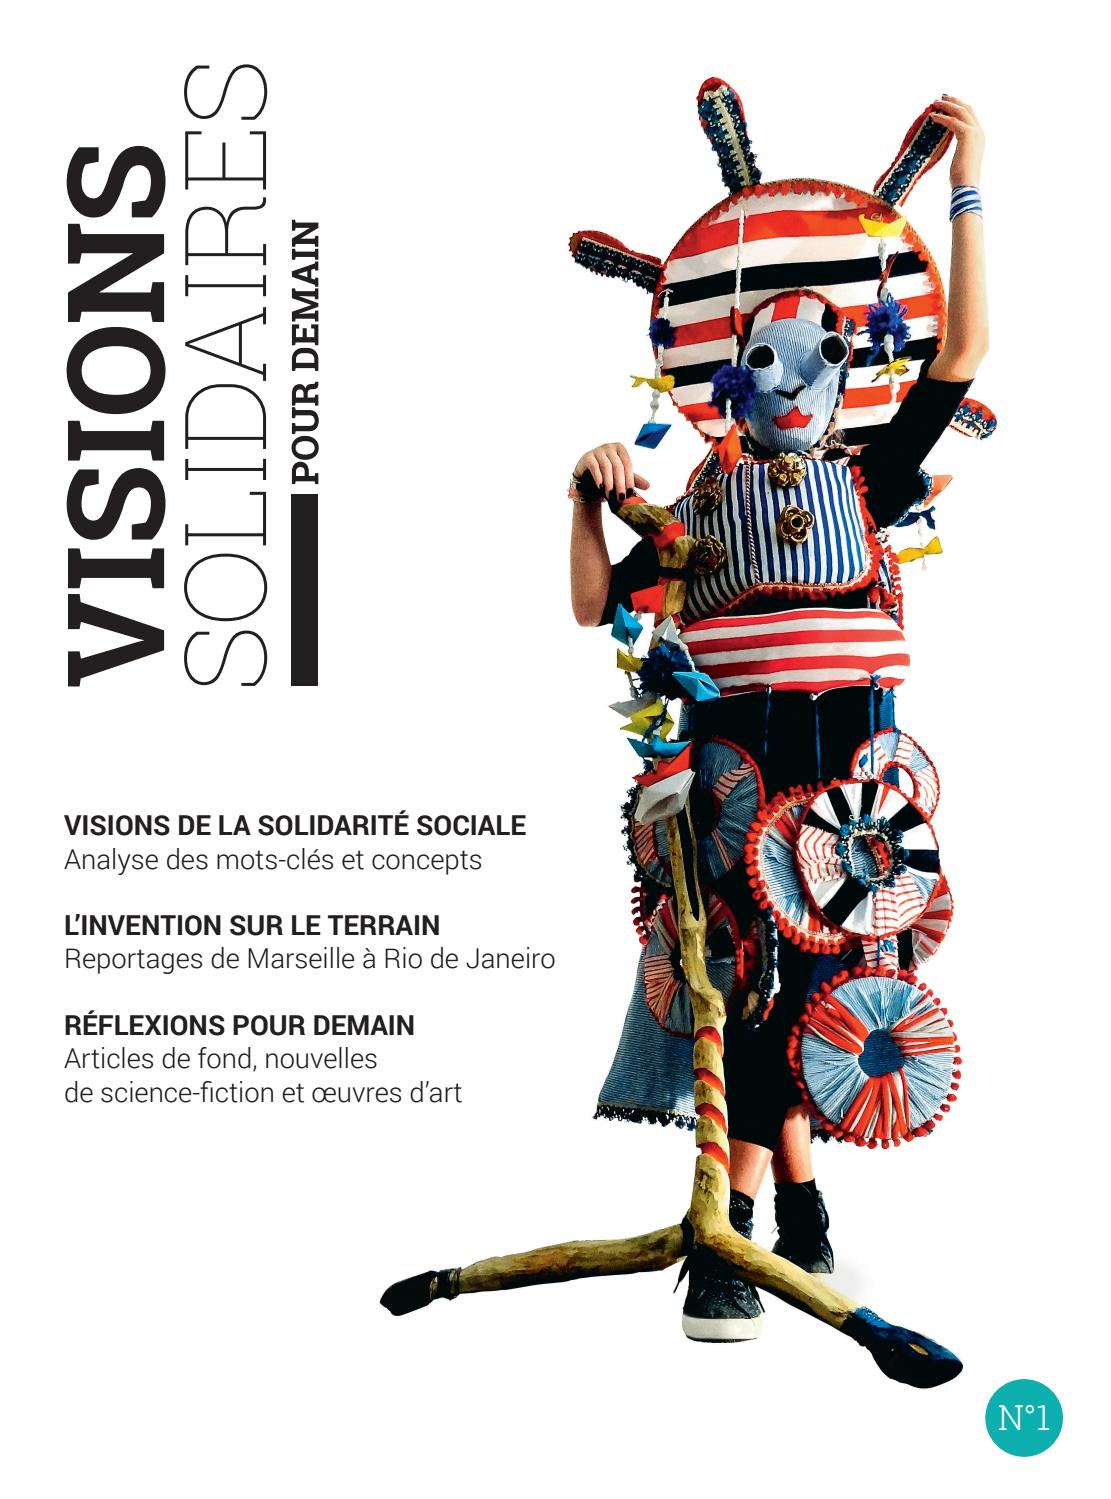 252c799cb89f Visions solidaires pour demain N°1 by Solidarum - issuu